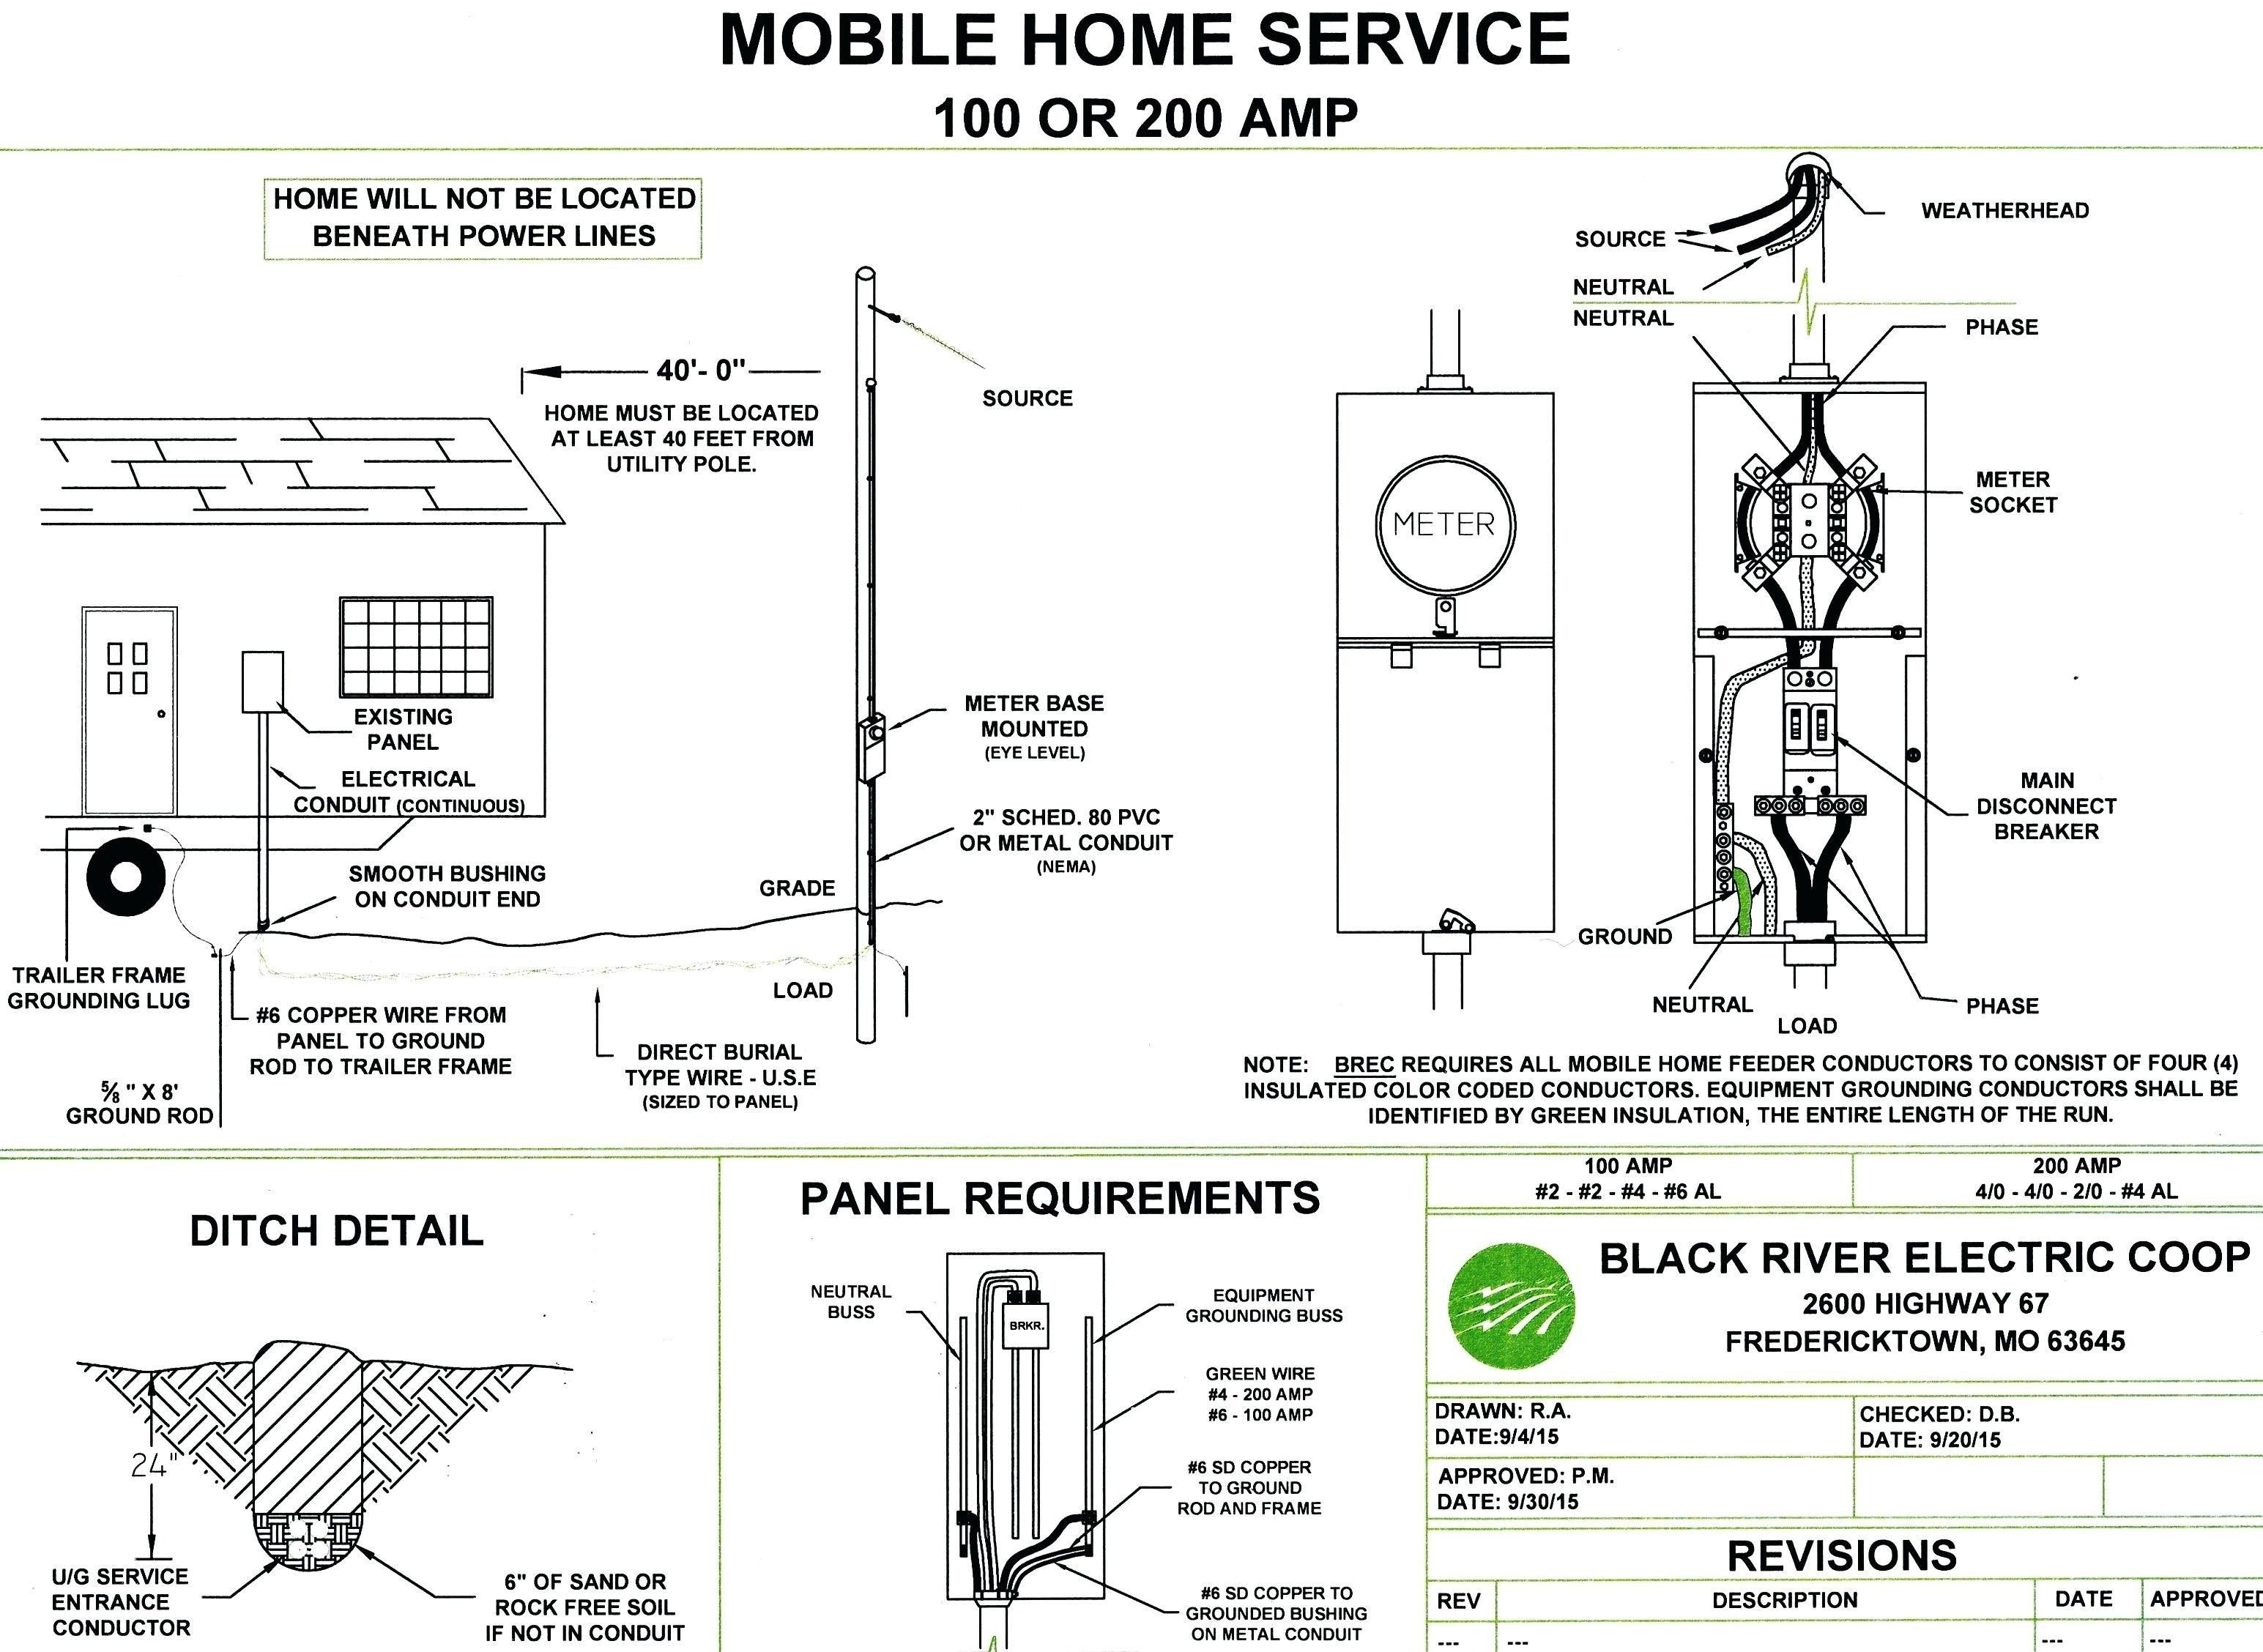 New Wiring Diagram Mobile Home Diagram Diagramsample Diagramtemplate Wiringdiagram Diagramchart Worksh Electrical Wiring Diagram House Wiring Mobile Home